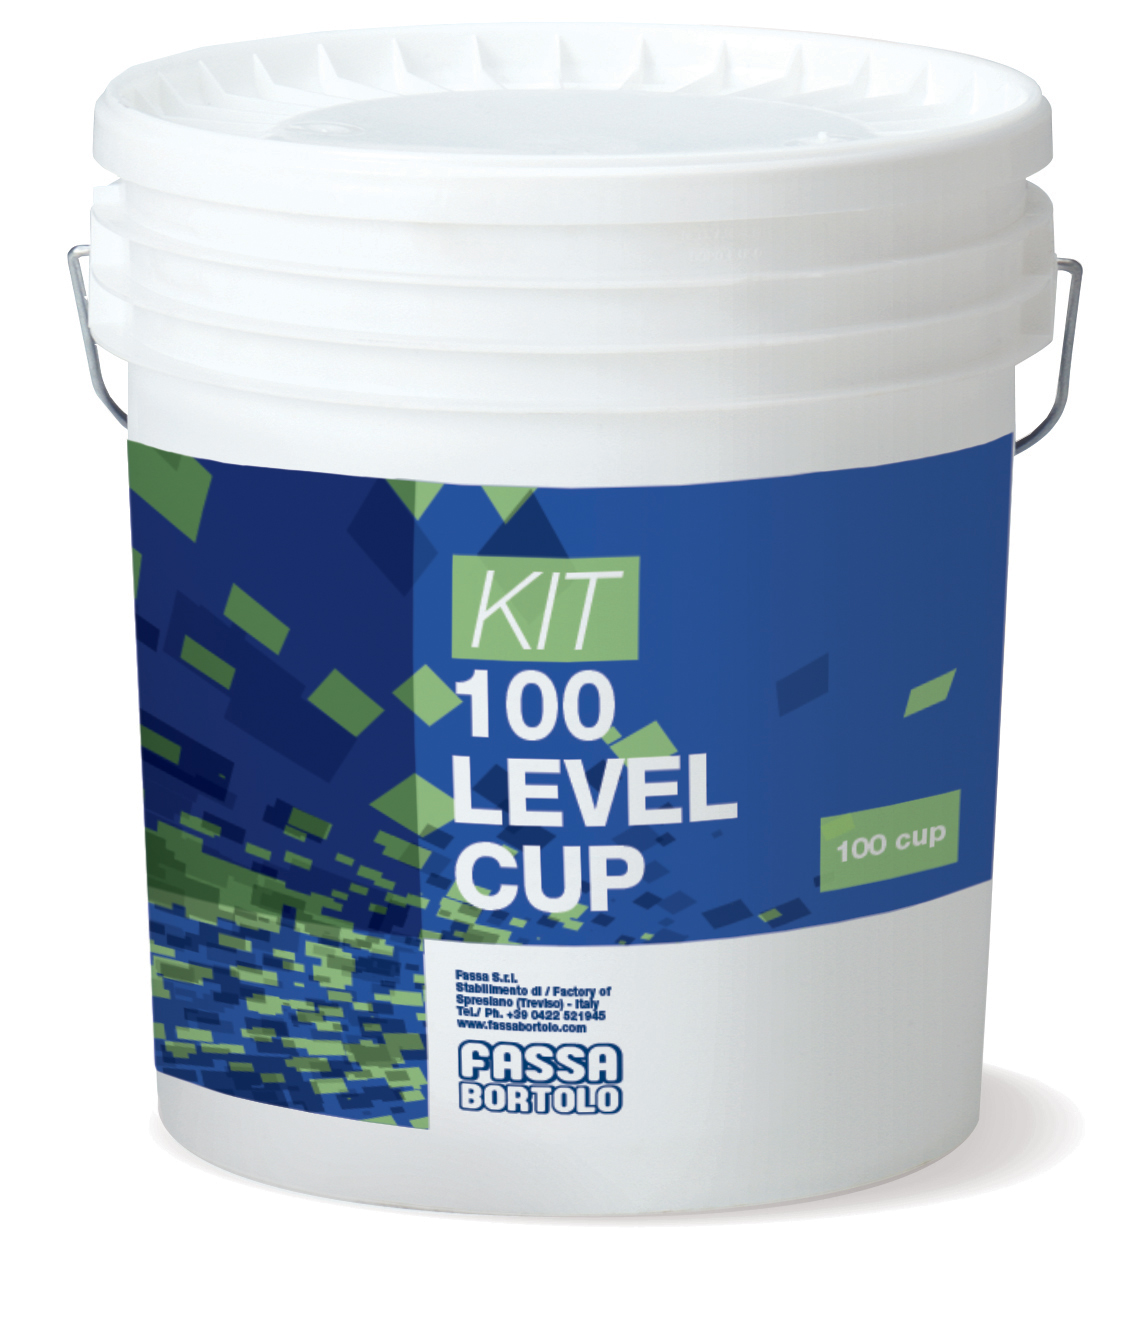 KIT 100 LEVEL CUP